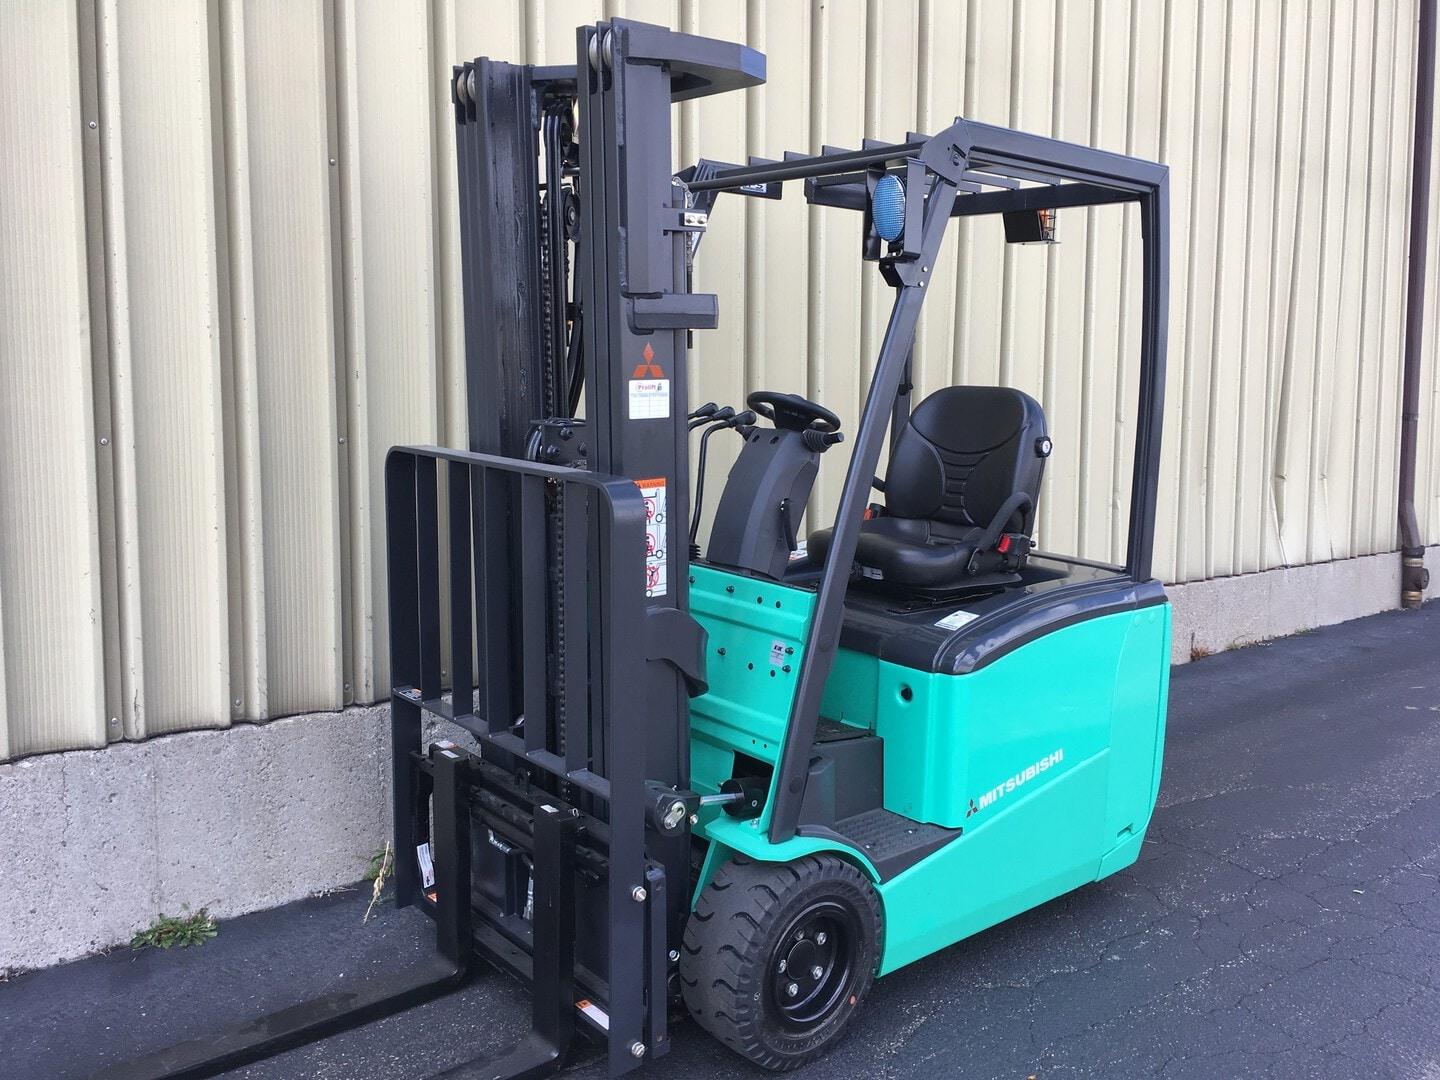 westminster lift electric mitsubishi for or sale truck resized forklifts services lease diesel